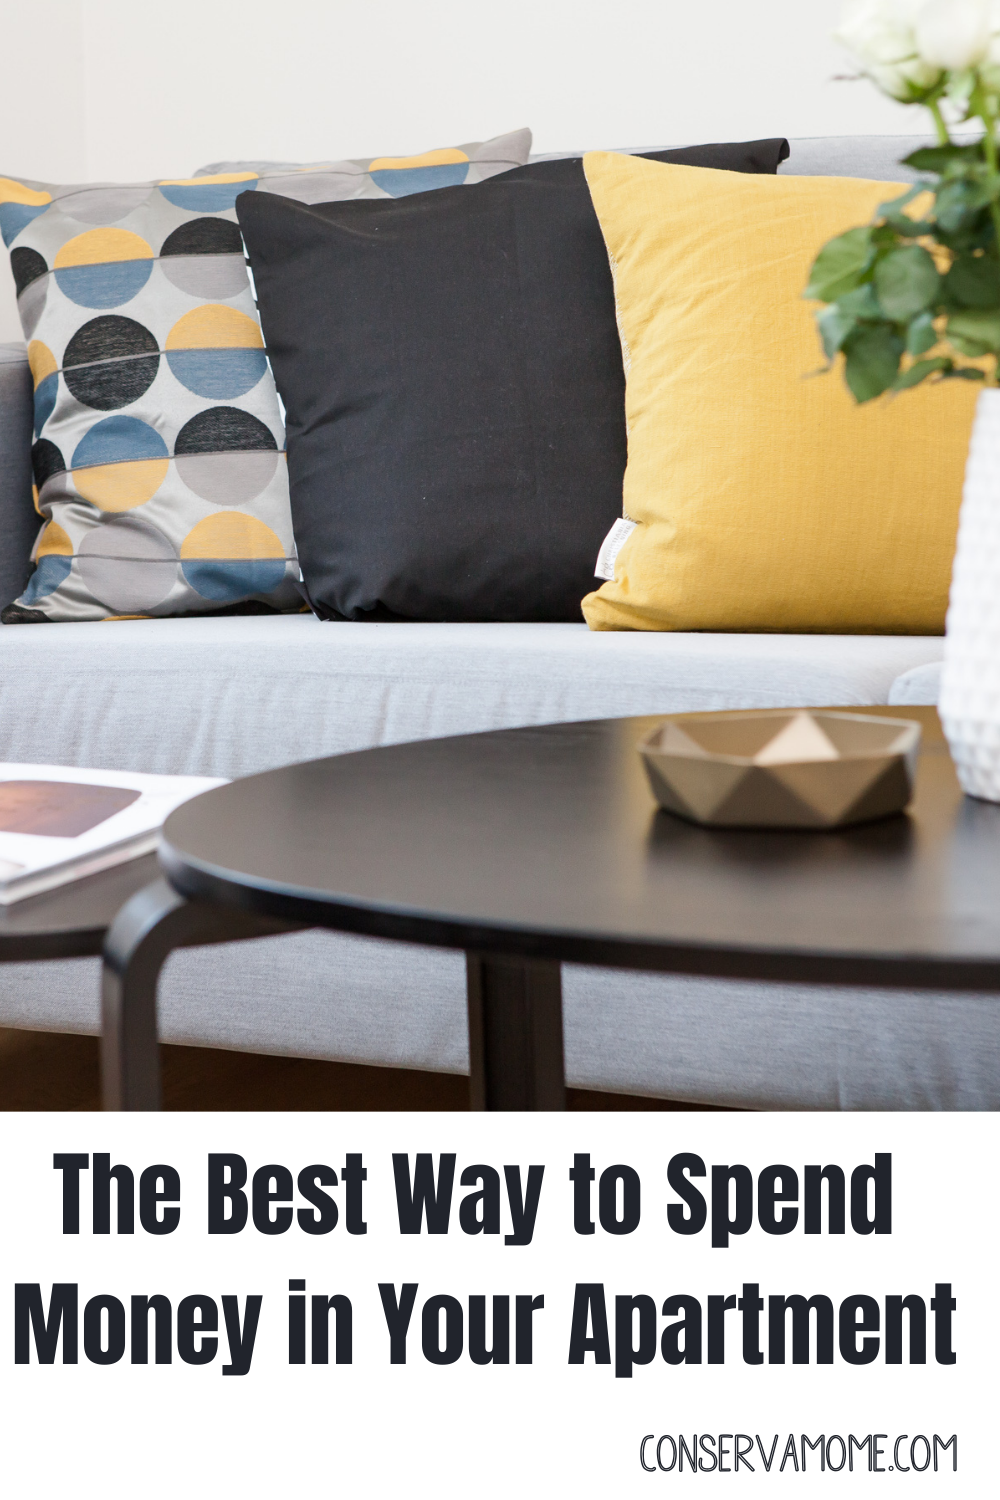 The Best Way to Spend Money in Your Apartment